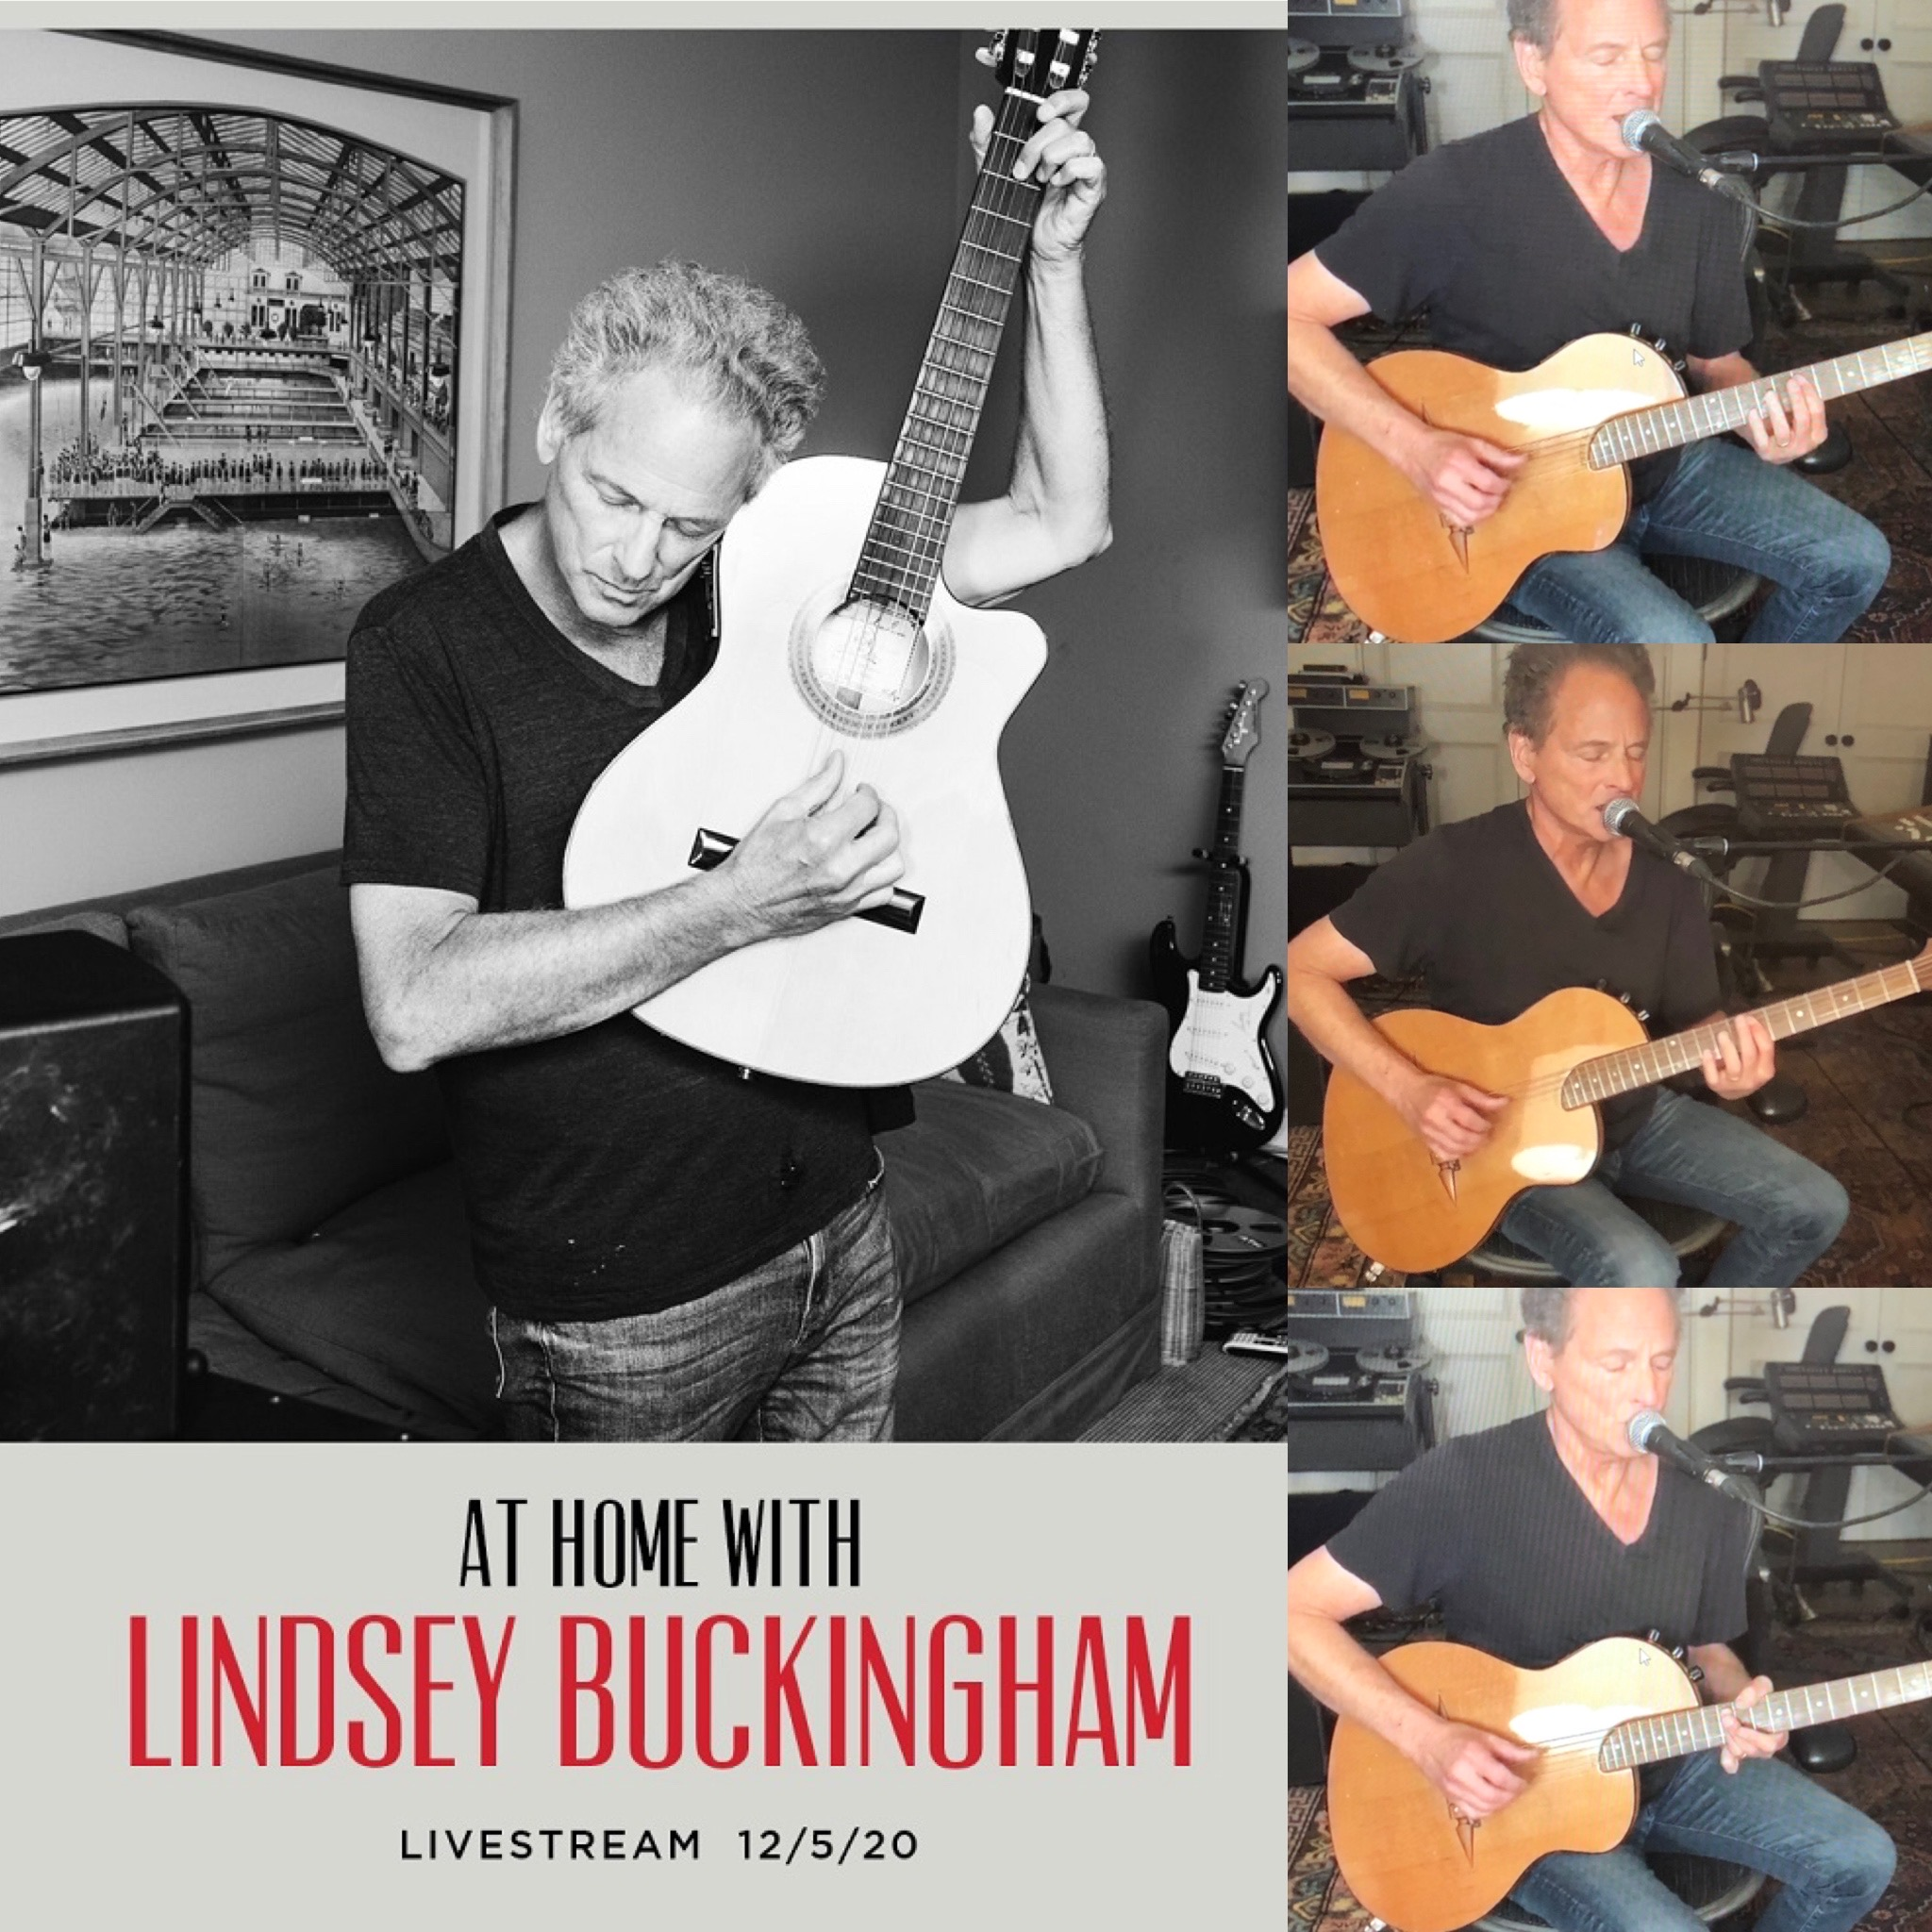 At Home with Lindsey Buckingham - 12/5/20